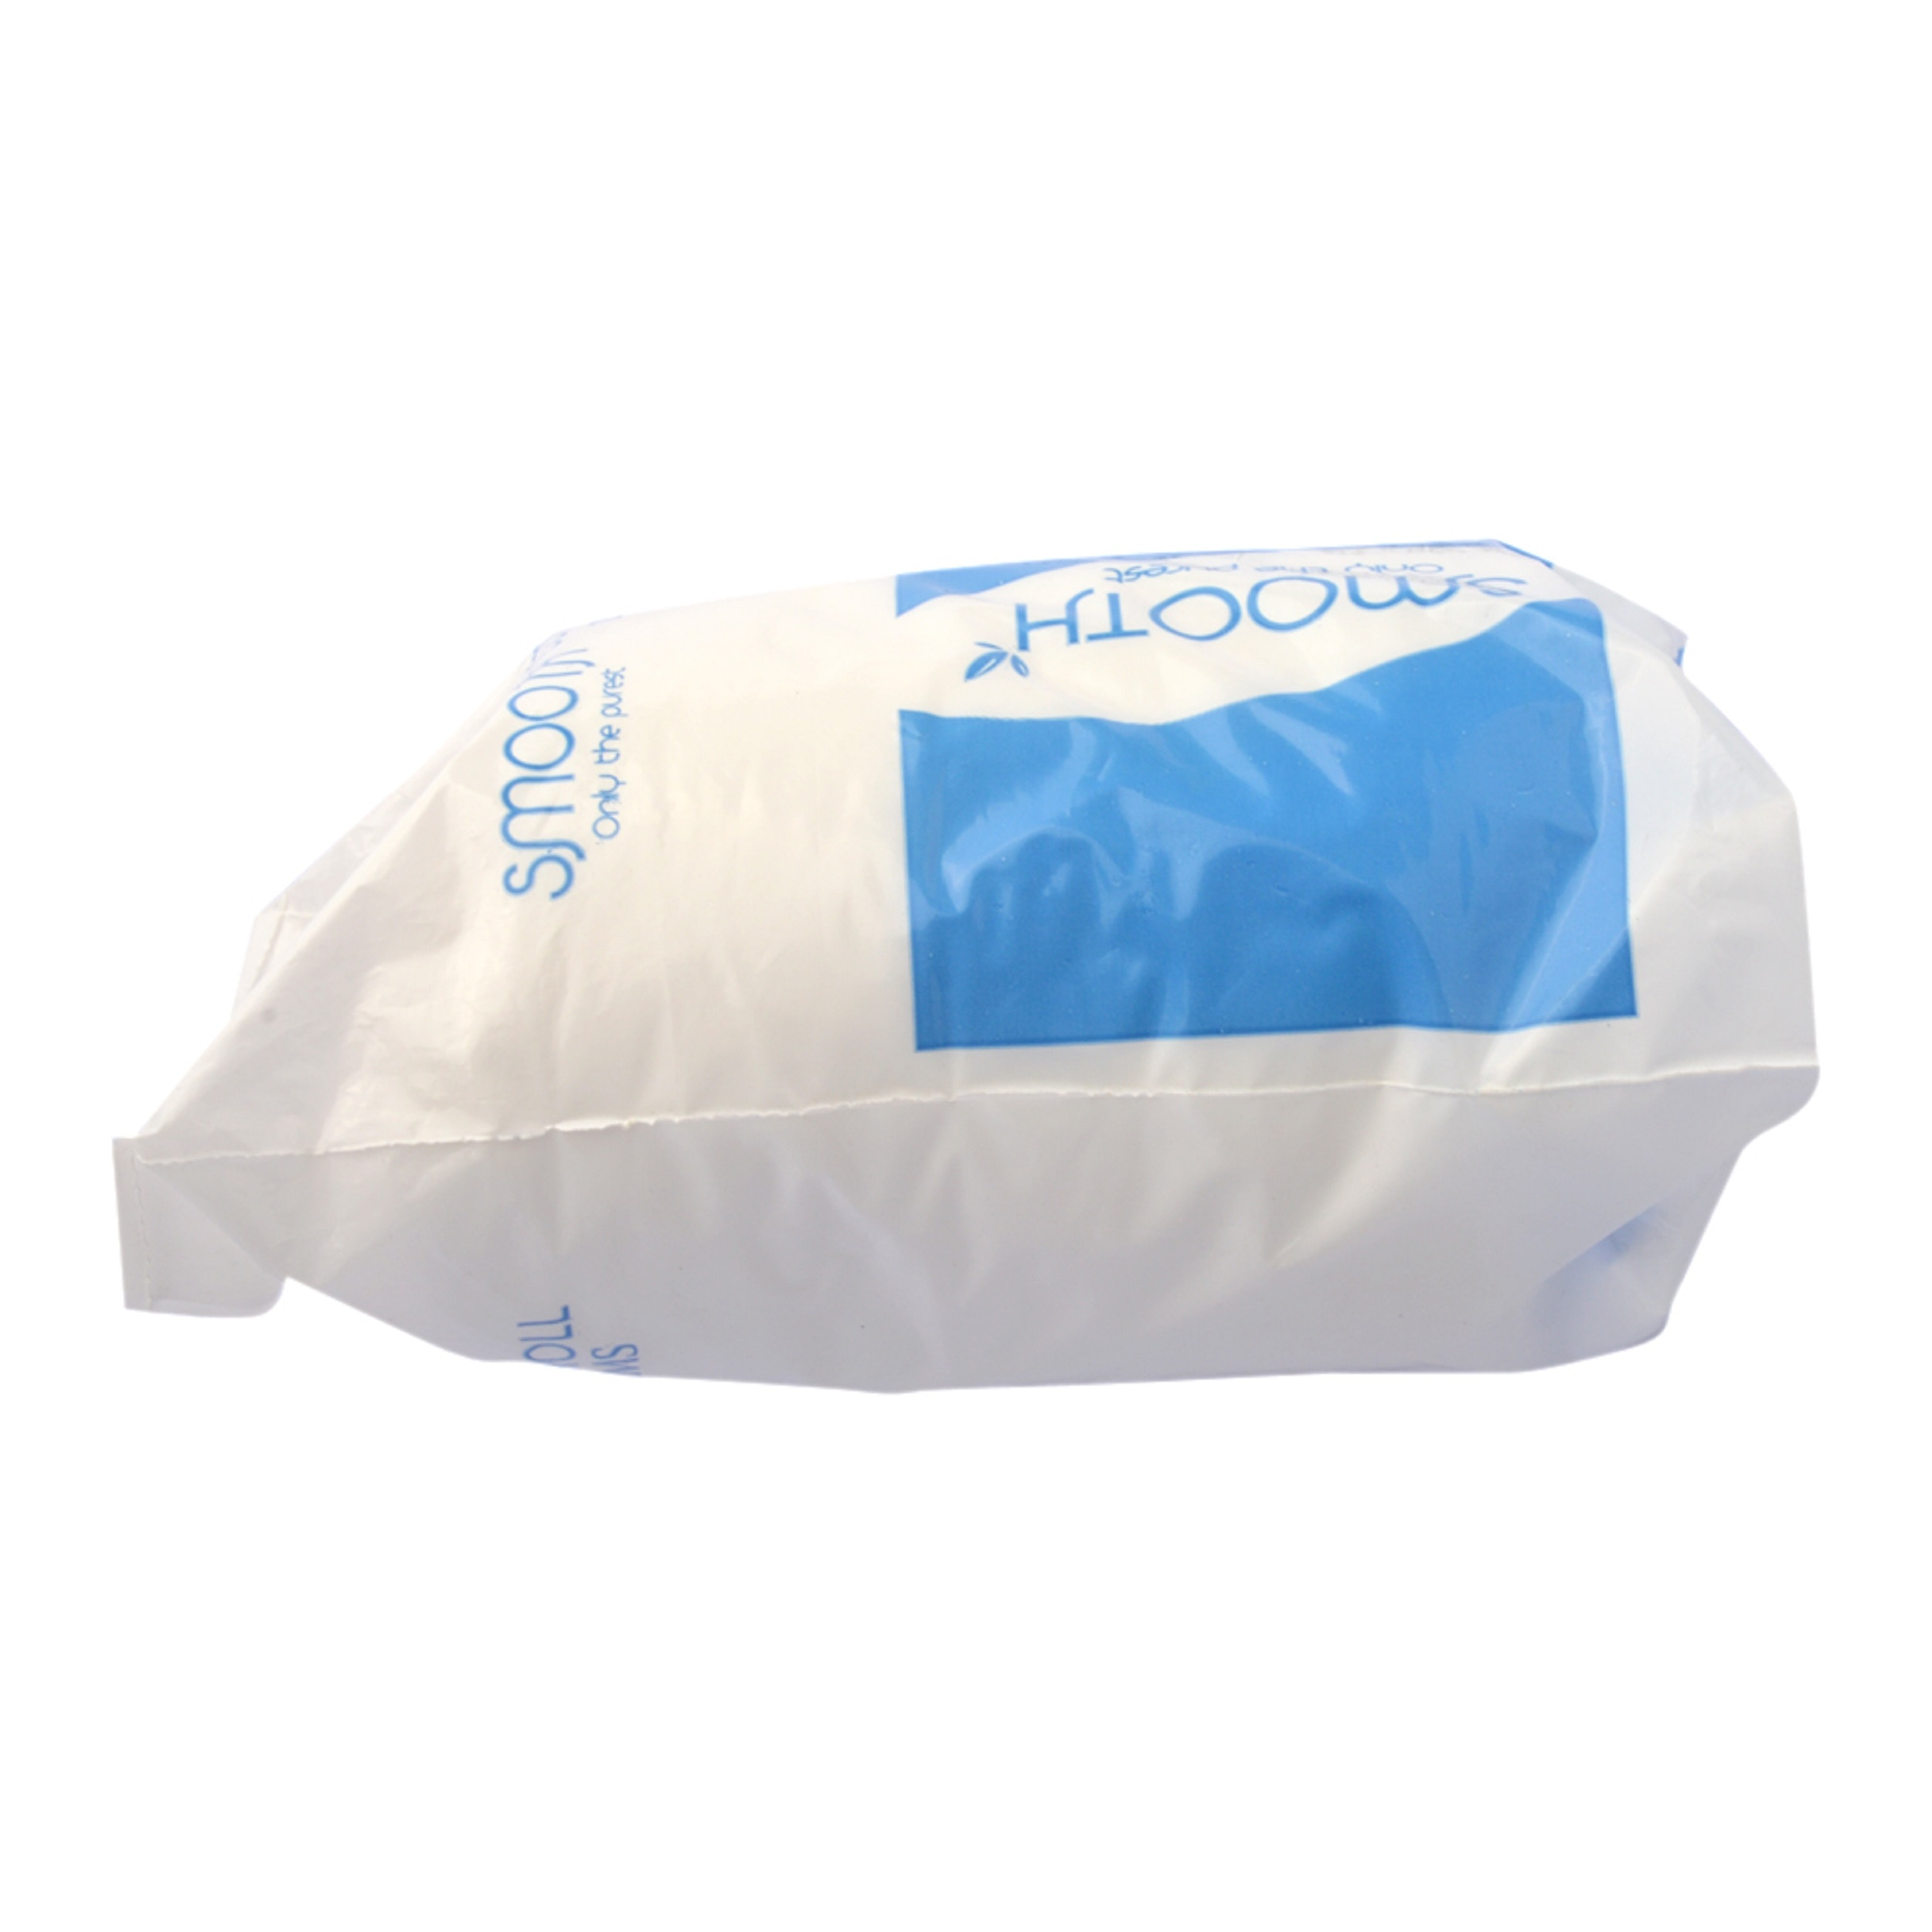 SMOOTHOnly the Purest Cotton Roll  20g,Cotton